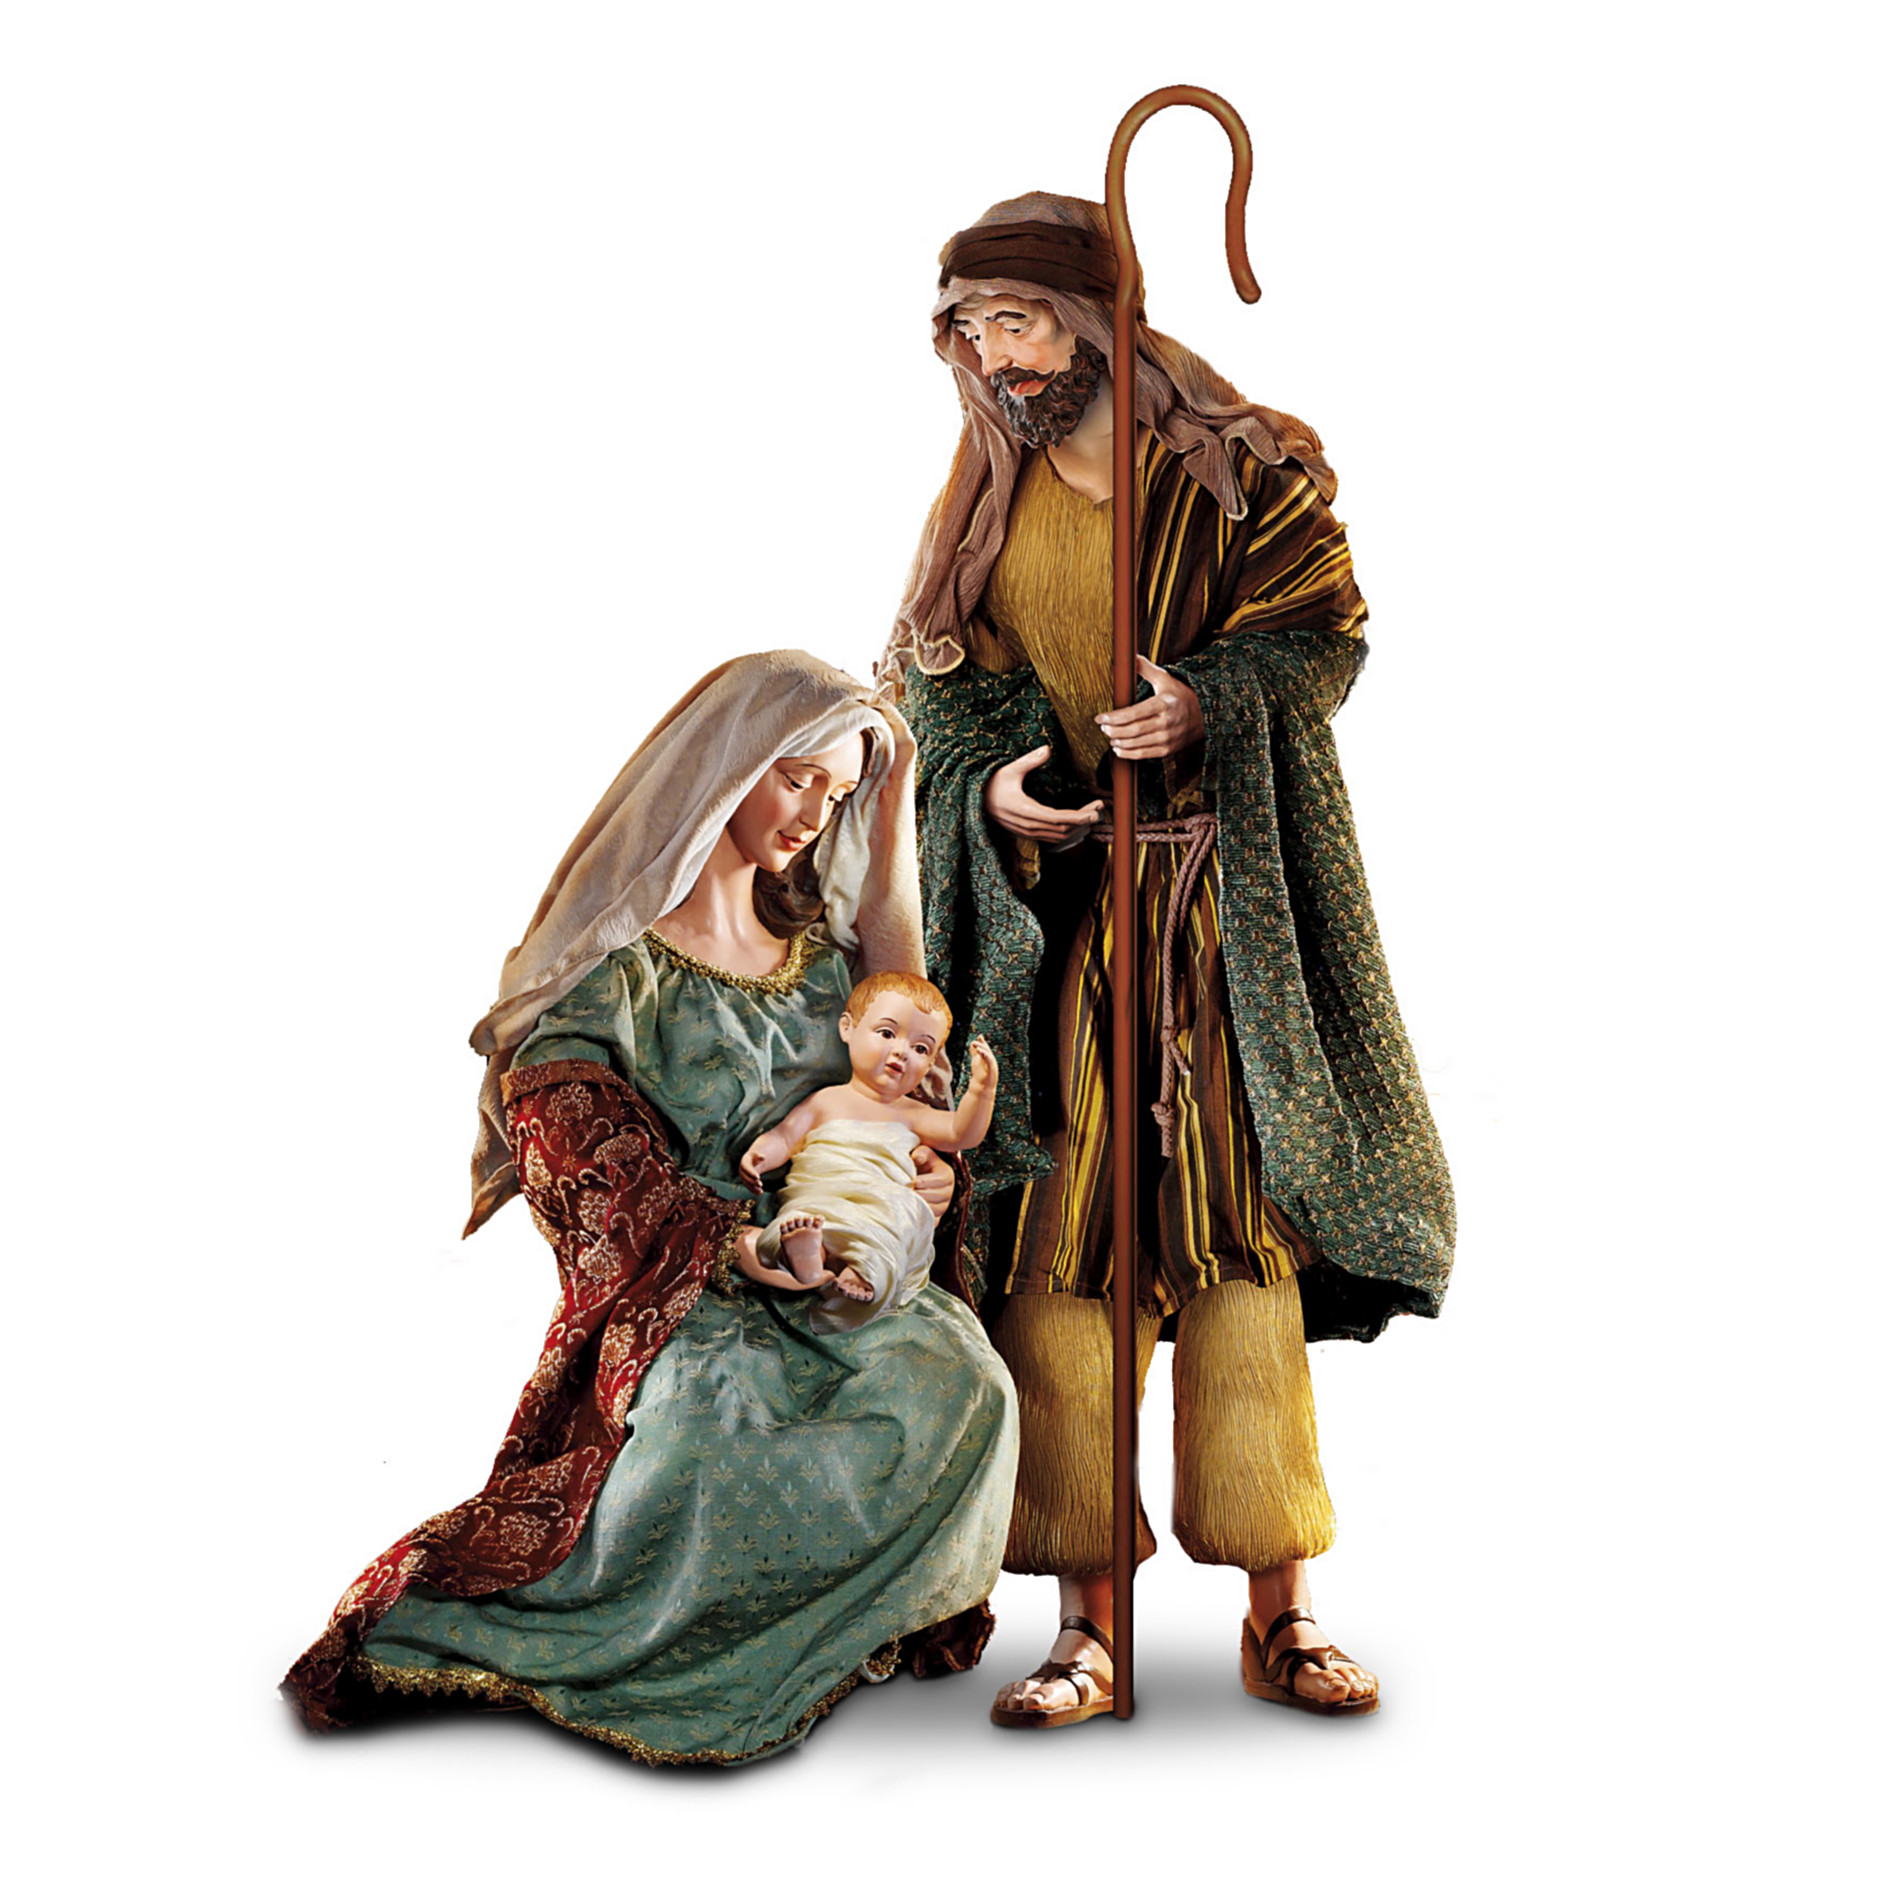 Hawthorne Village Nativity Set: Thomas Kinkade Holy Nativity Set at Sears.com